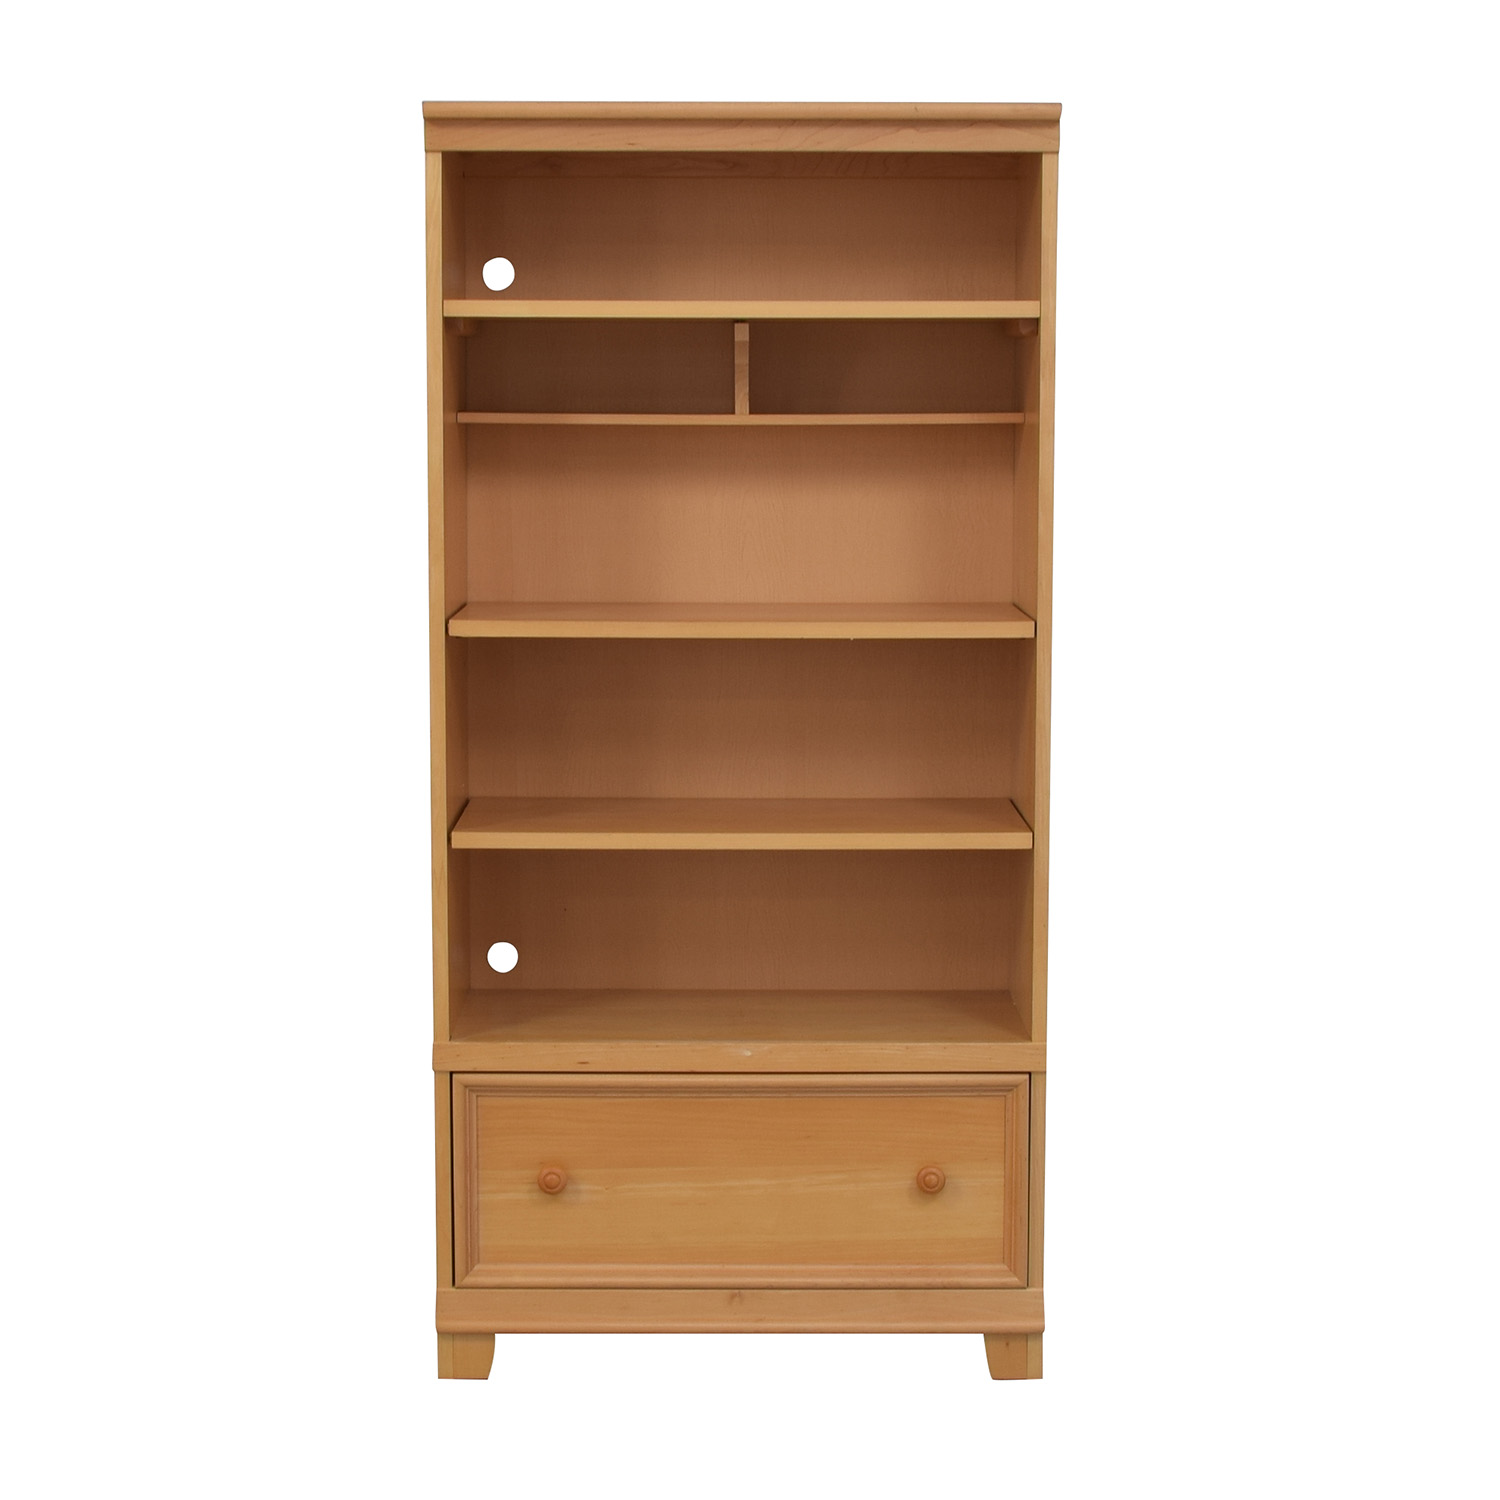 Stanley Furniture Stanley Furniture Young America Bookcase nyc